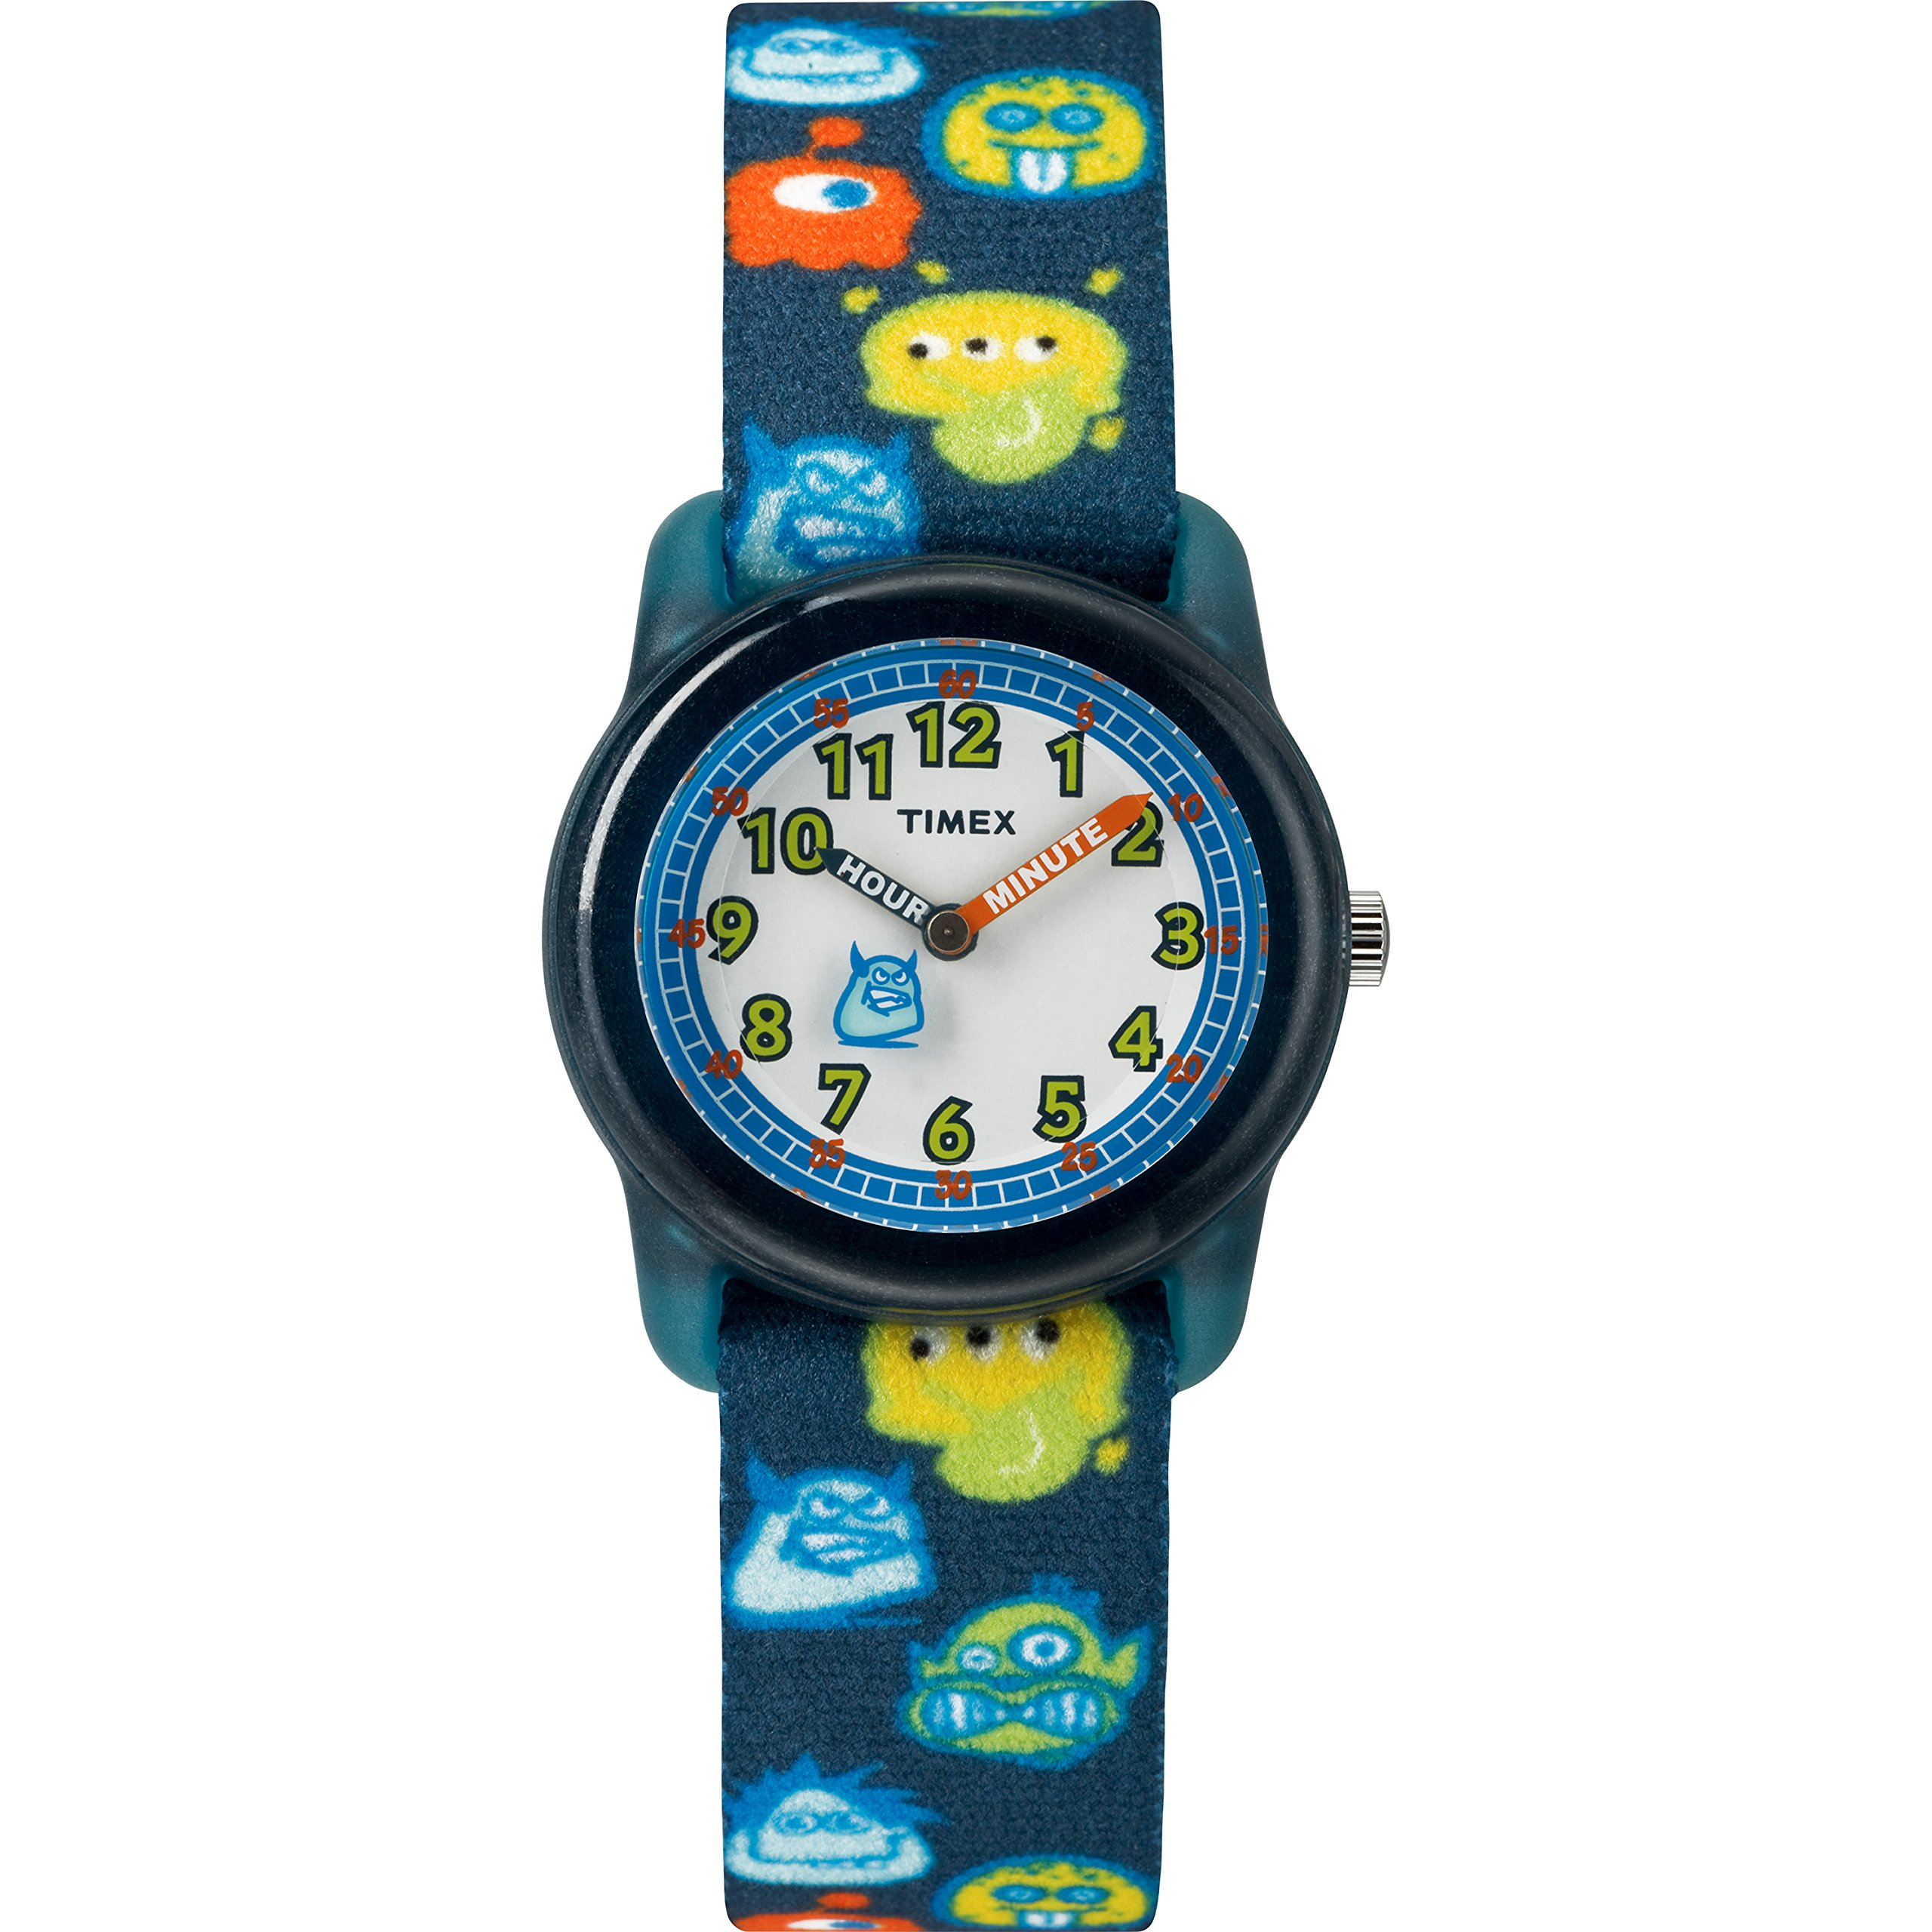 Timex Boys TW7C25800 Time Machines Black/Monsters Elastic Fabric Strap Watch